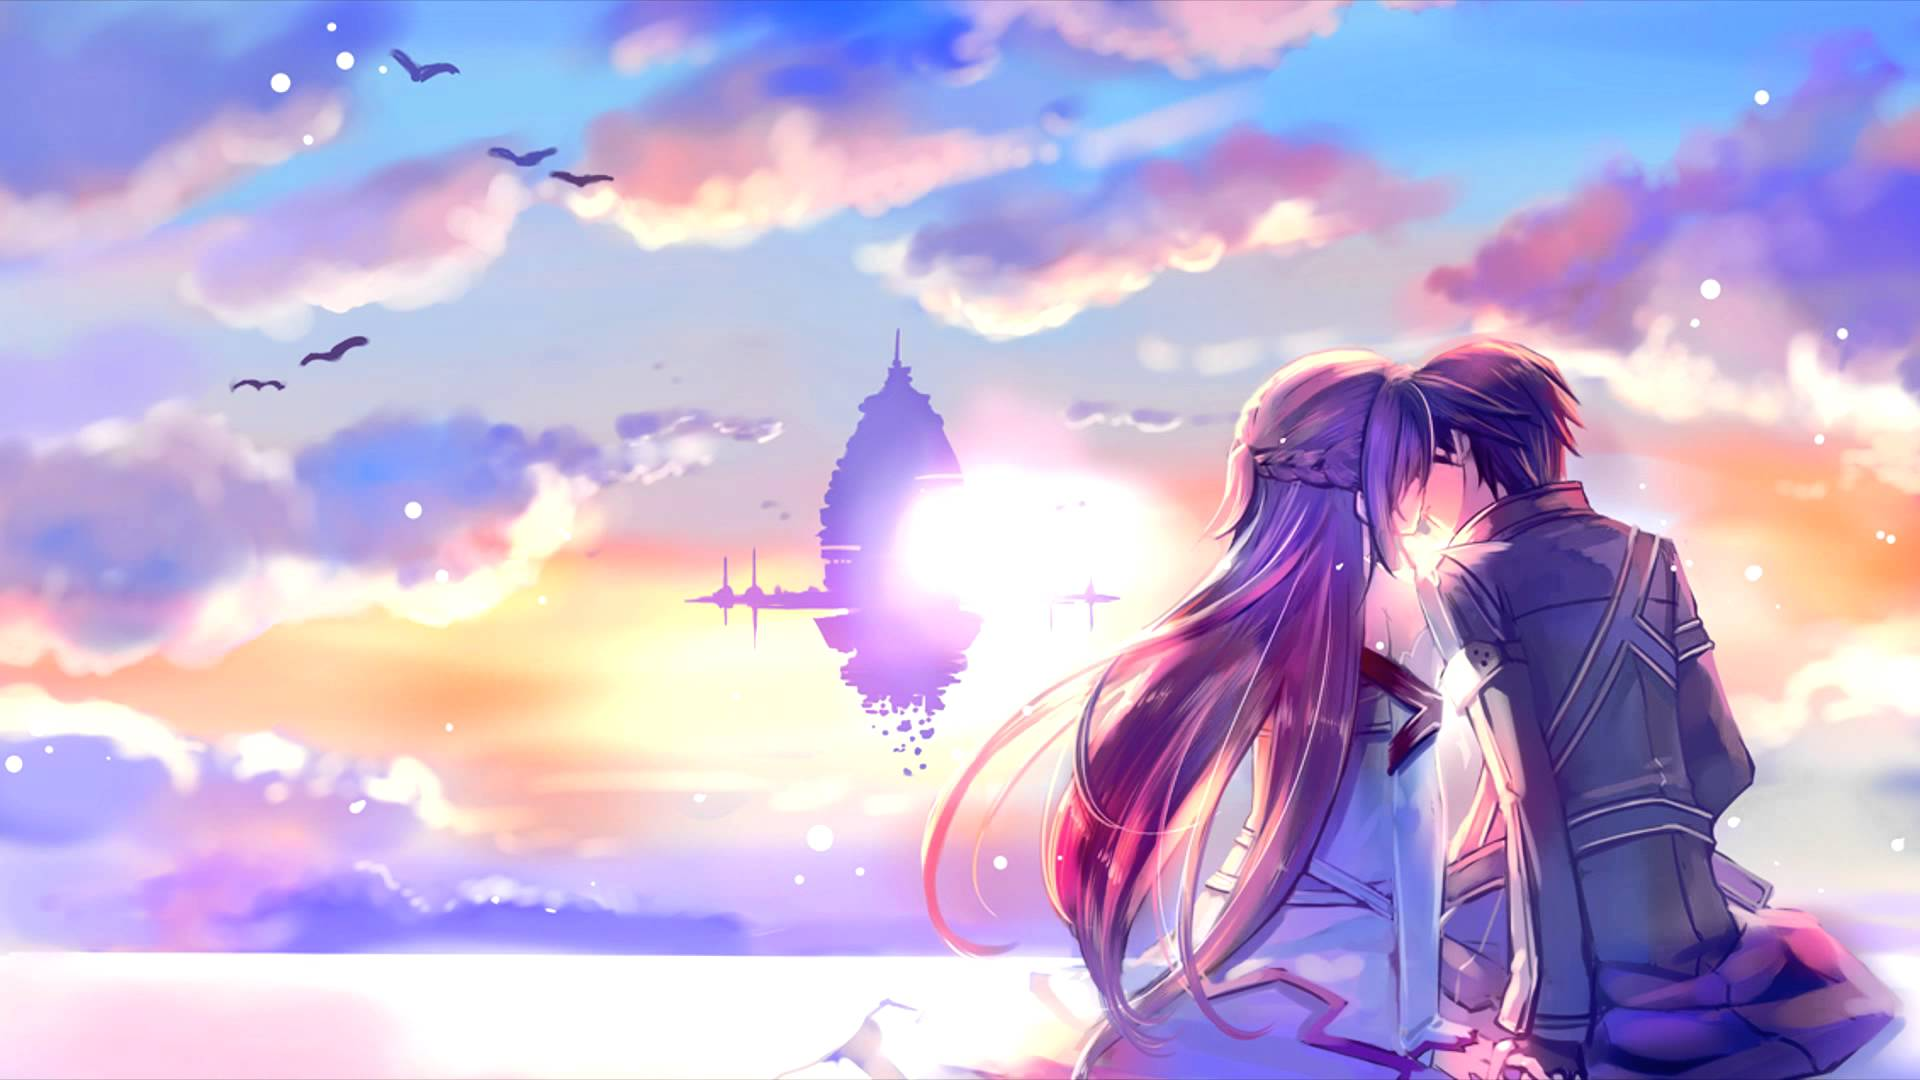 Desktop Wallpaper Romantic Love : Romantic Anime Wallpapers - Wallpaper cave